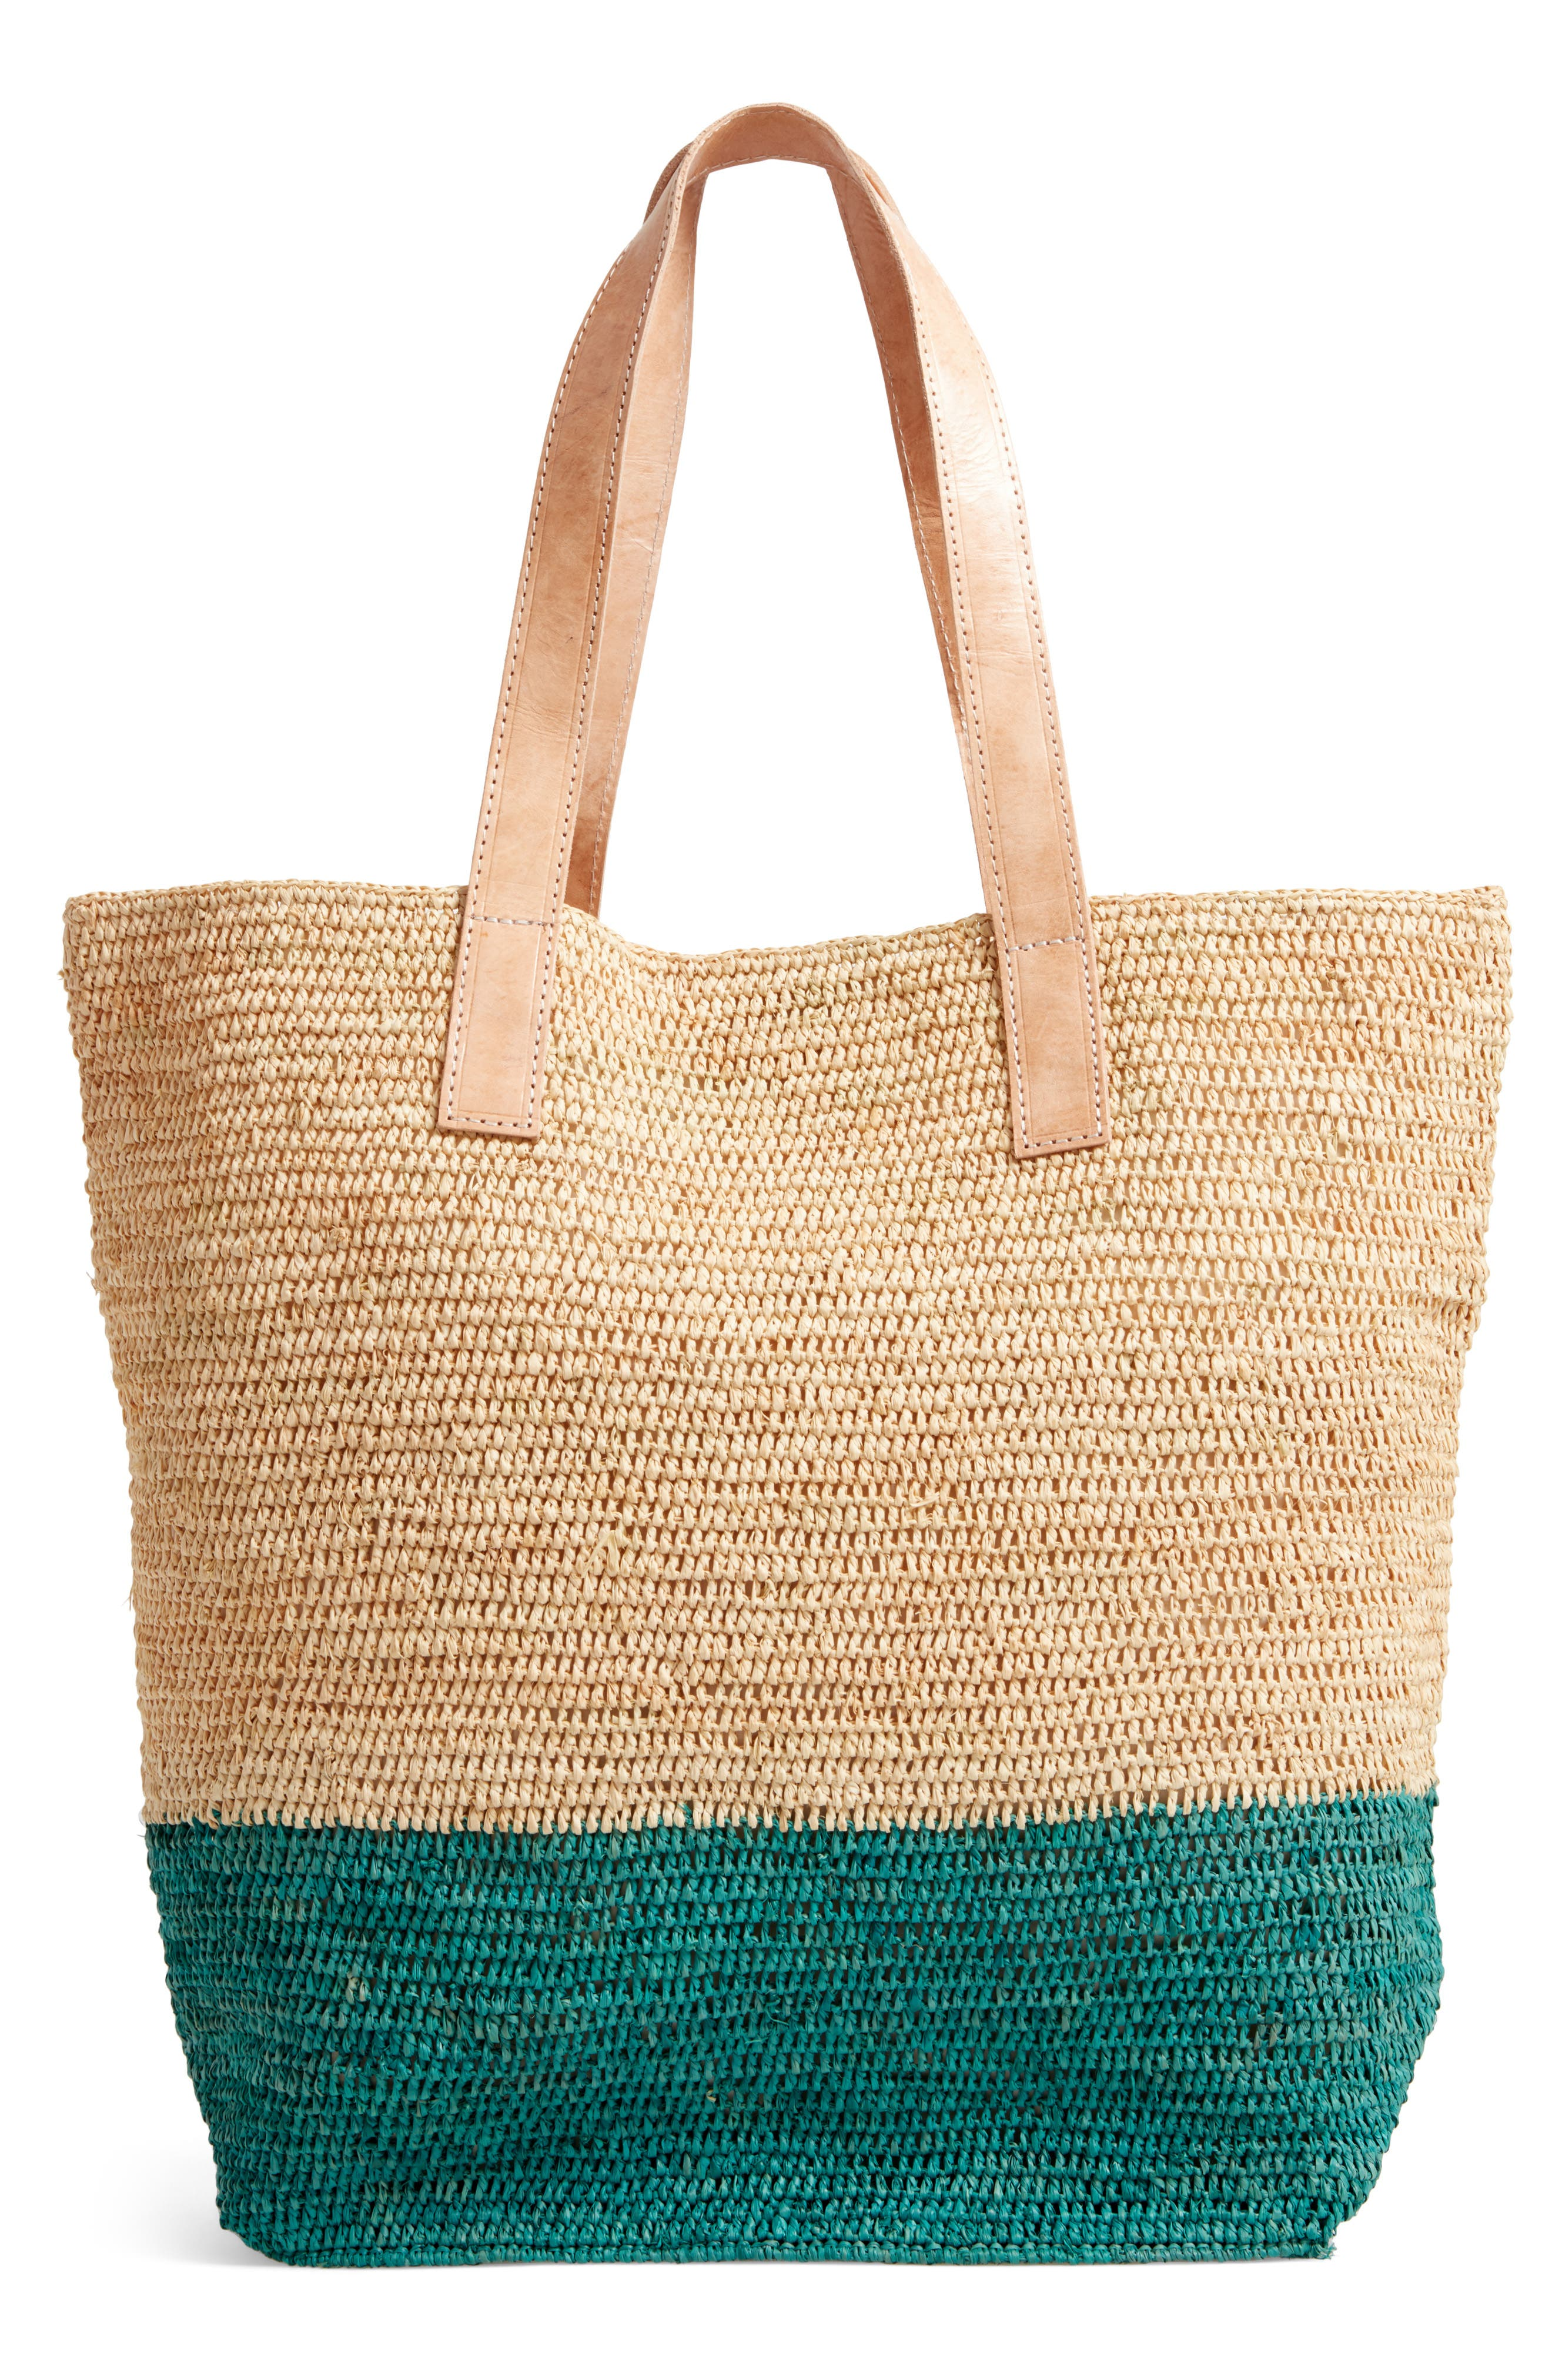 Montauk Woven Tote with Pom Charms,                             Alternate thumbnail 3, color,                             401